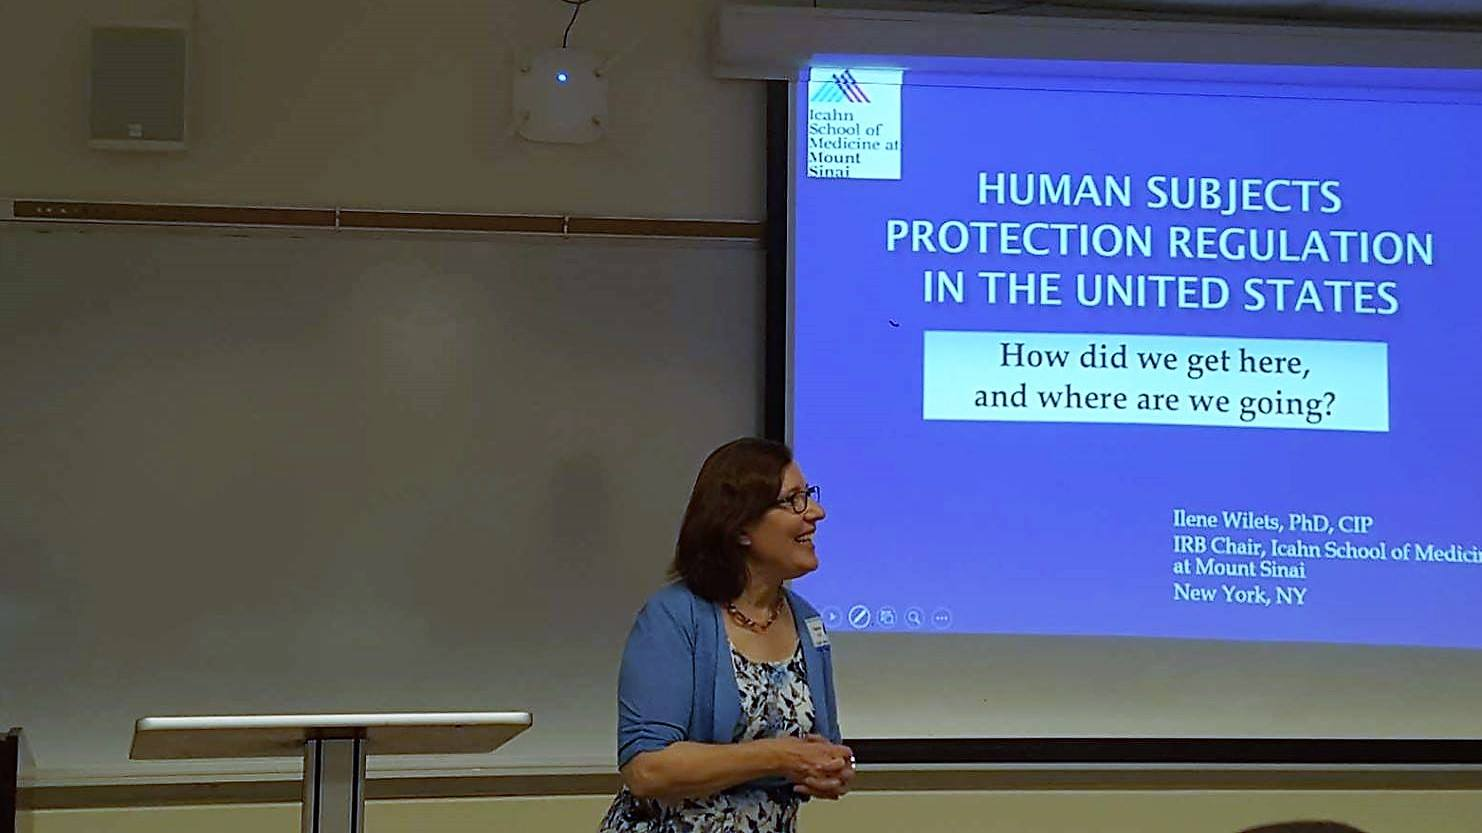 Ilene Wilets, IRB Chair Program for the Protection of Human Subjects, Senior Faculty, Department of Environmental Medicine and Public Health, Icahn School of Medicine at Mount Sinai